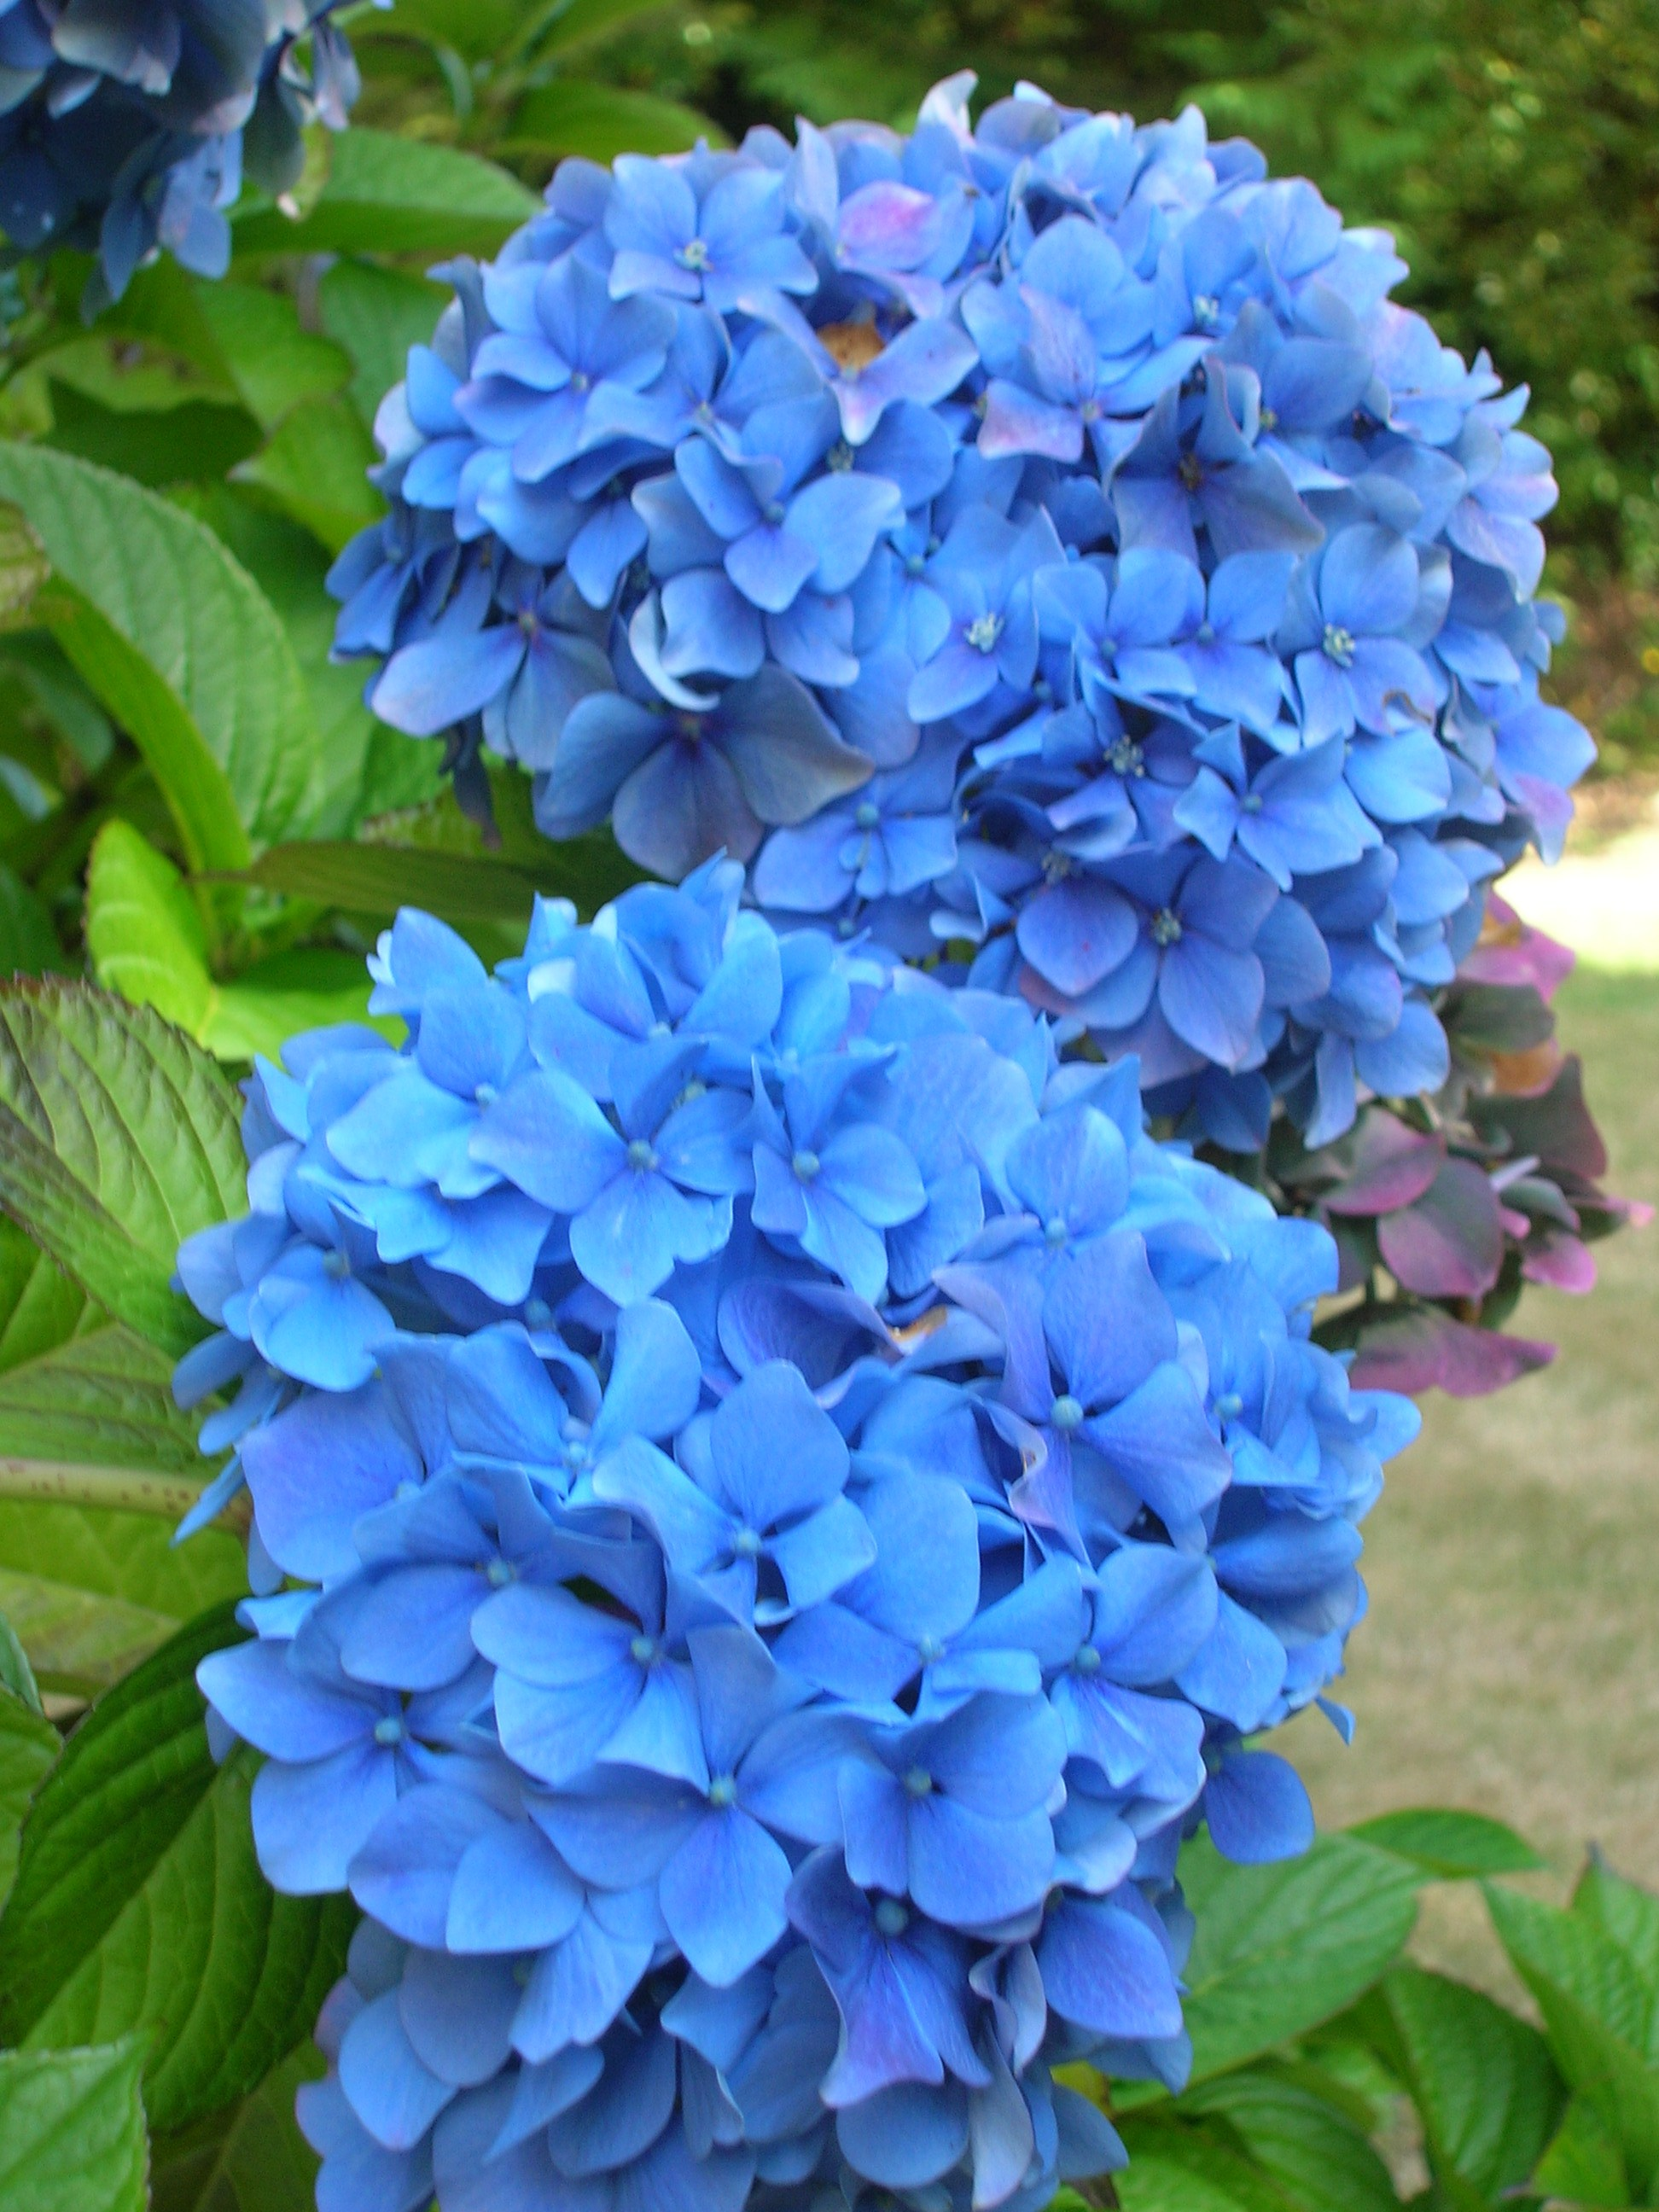 Sue fagalde lick words and music from blue hydrangea productions i chose the name for the massive blue flowers right outside my front door which mirror the ones that cover the azores islands in portugal from which my izmirmasajfo Images